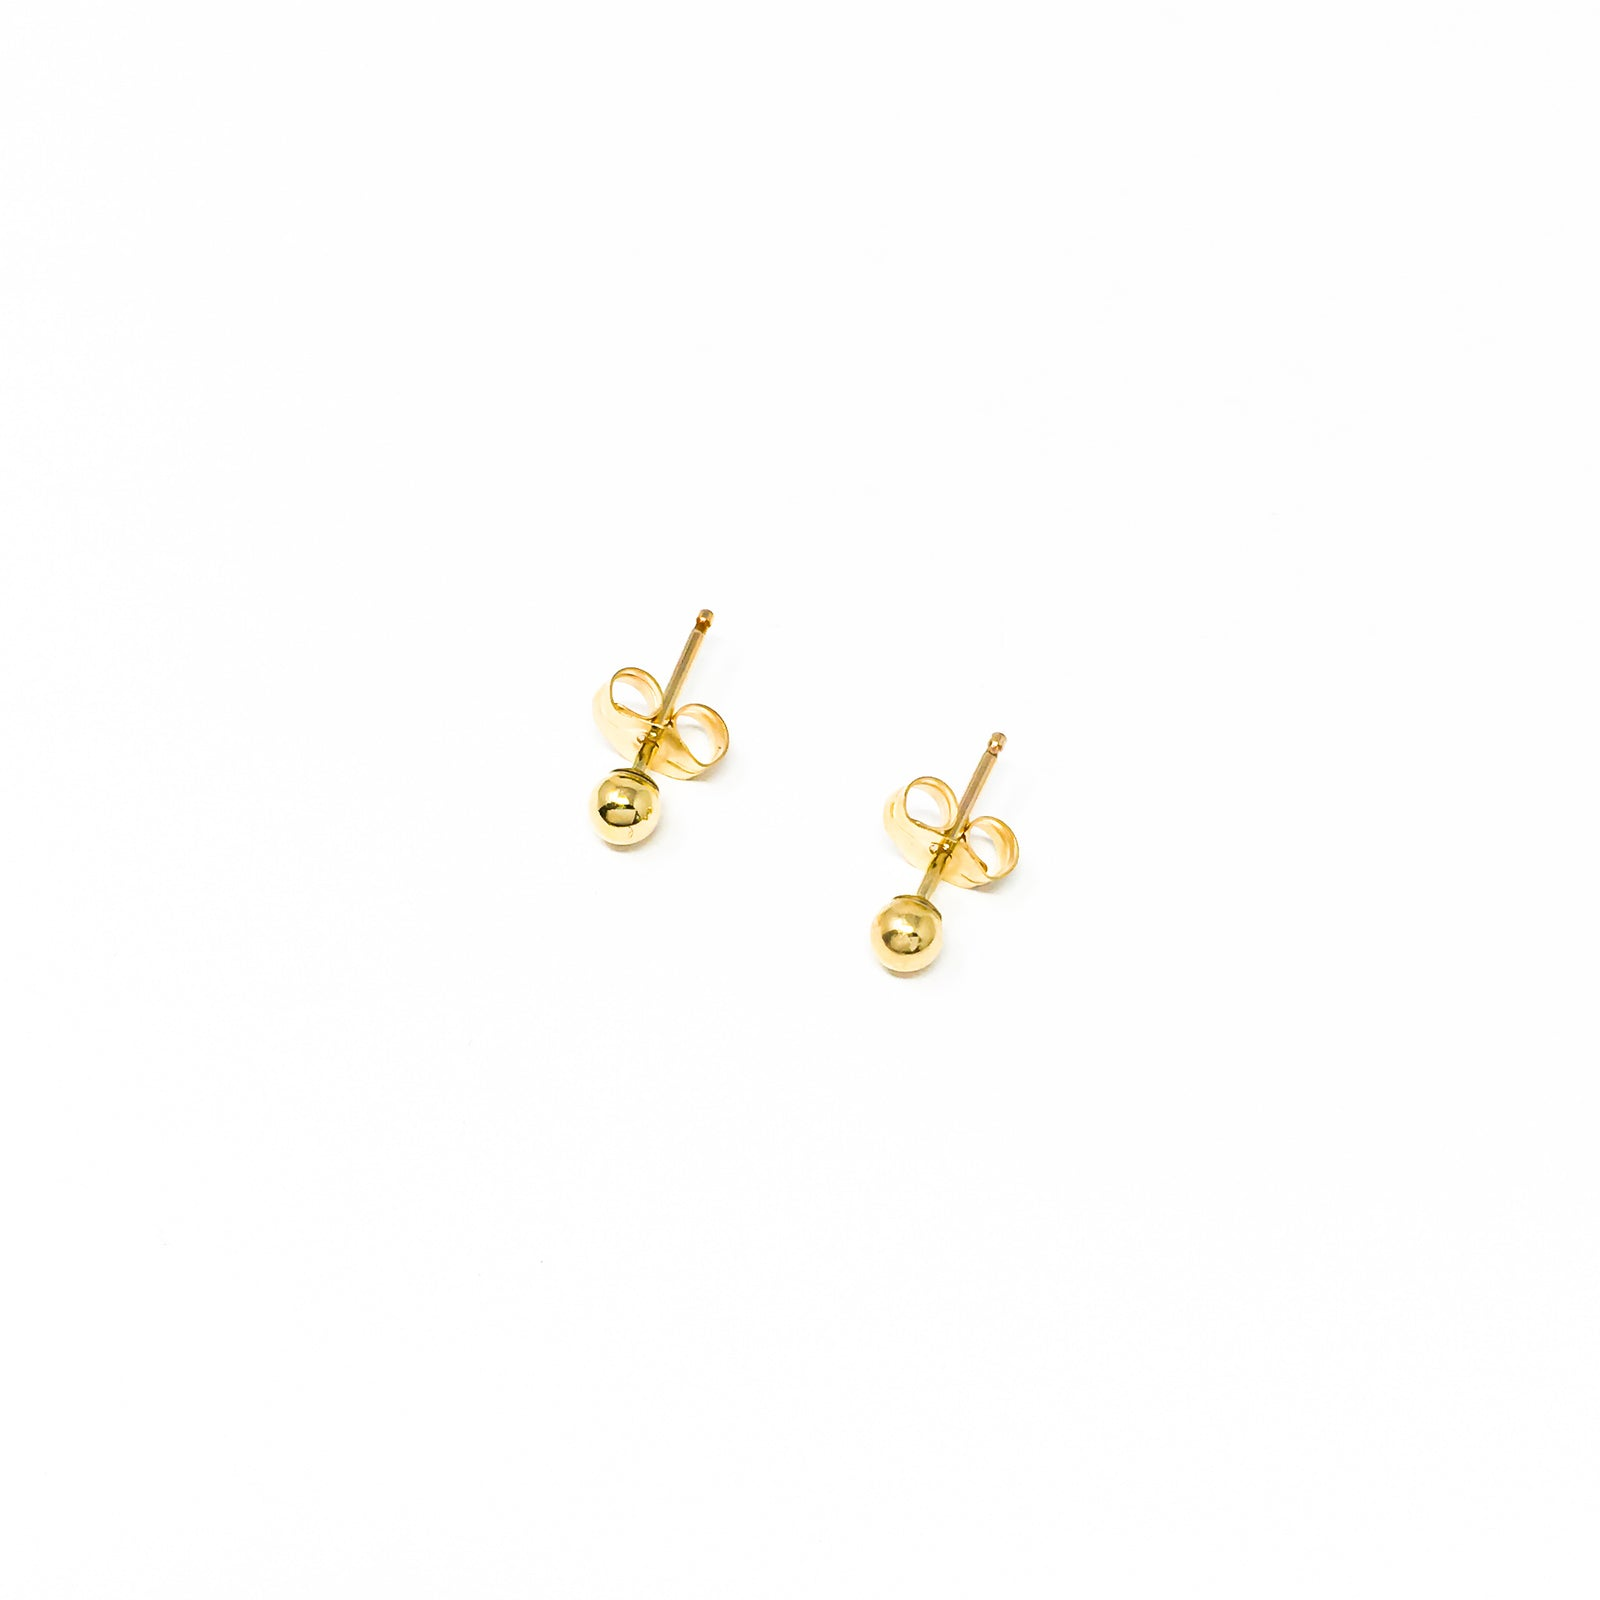 SPHERE STUD EARRINGS | 14K GOLD-FILLED | SIZE OPTIONS